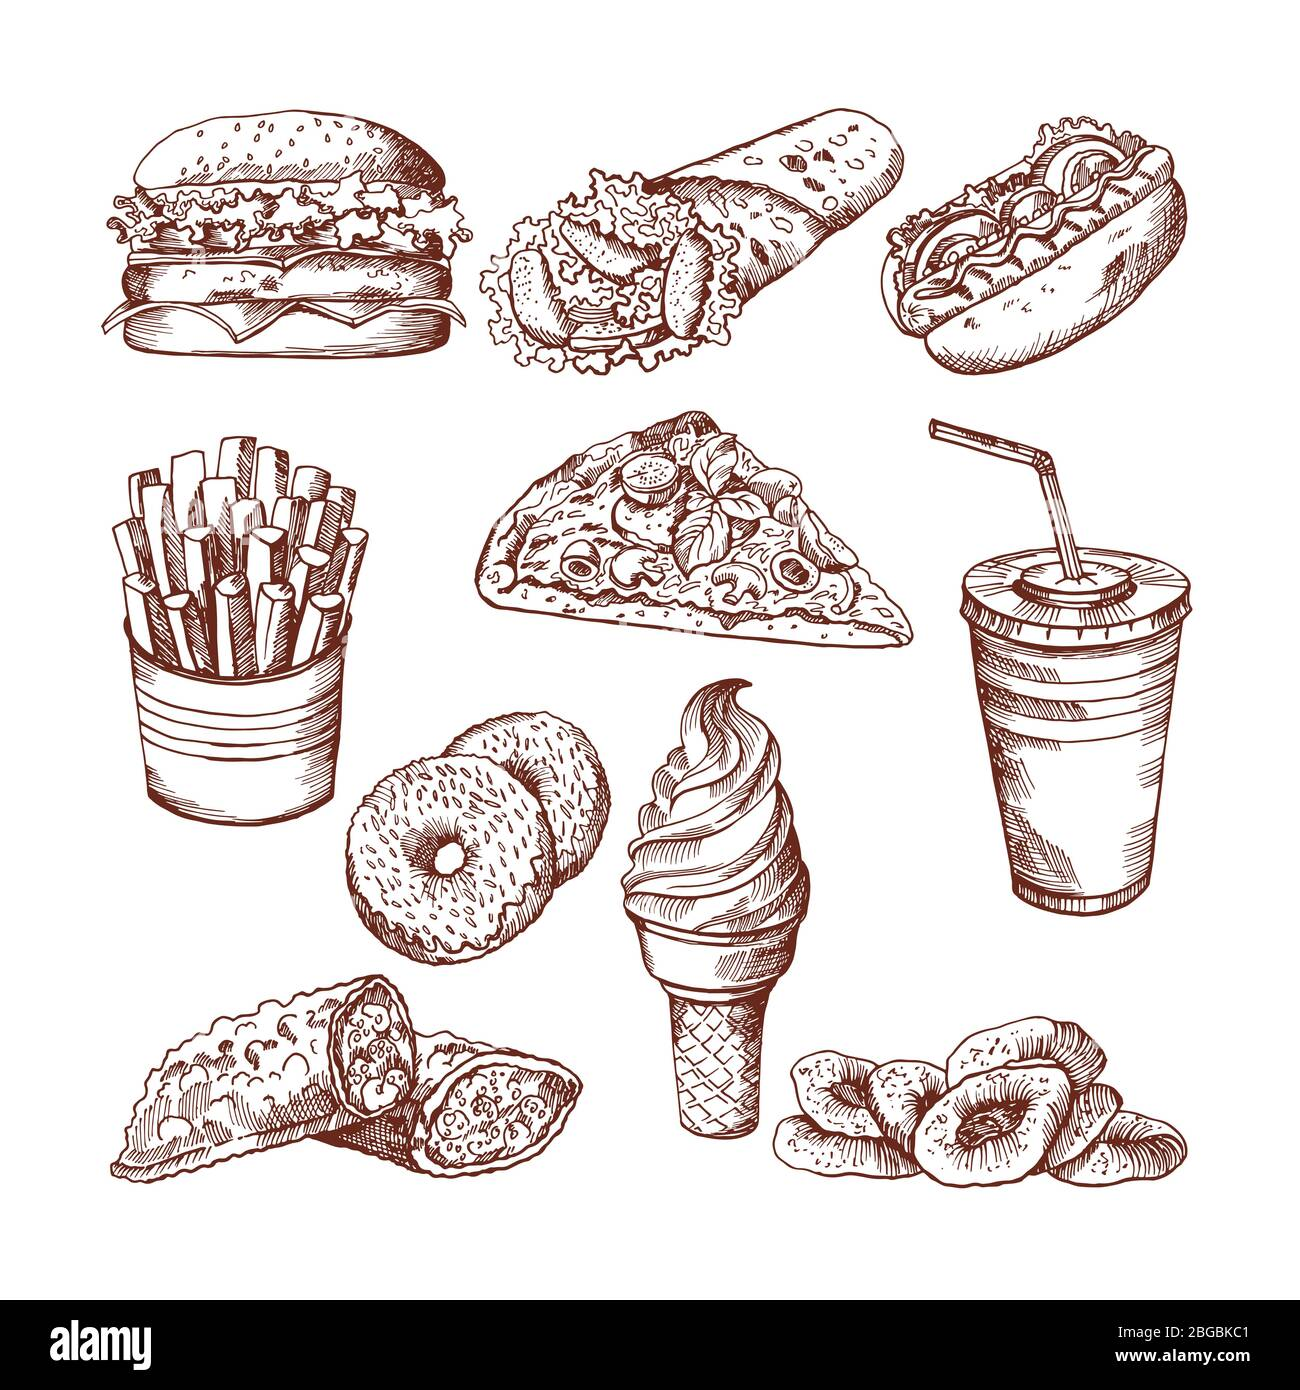 Fast Food Restaurant Vector Hand Drawn Pictures Of Burger French Fries Cola And Pizza Stock Vector Image Art Alamy